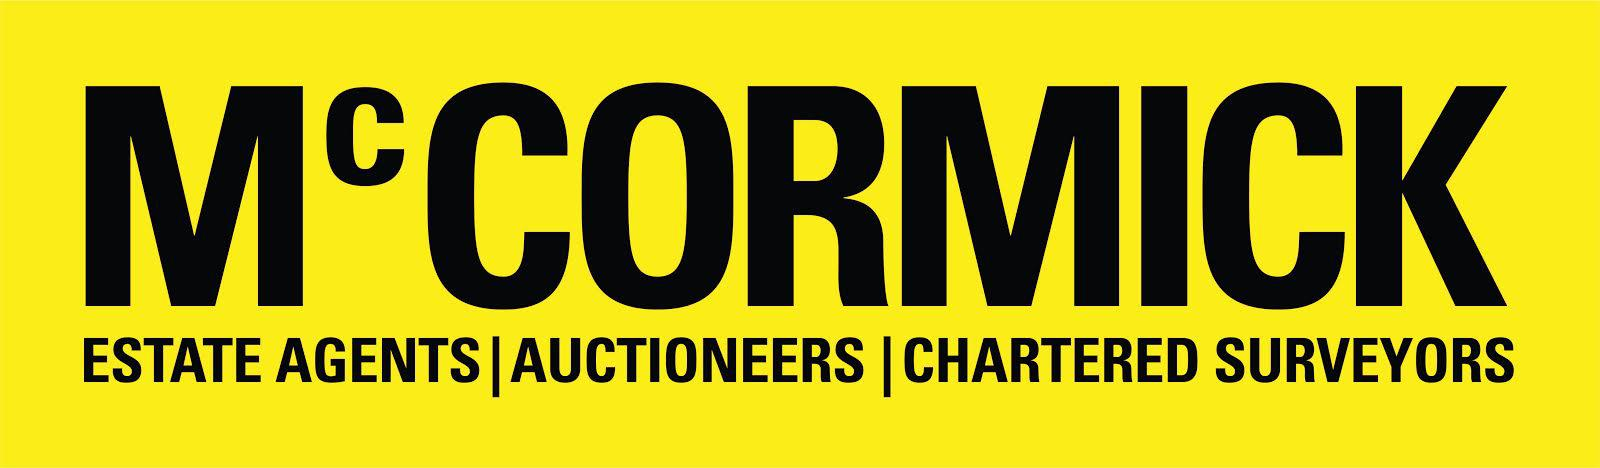 McCormick - Estate Agents, Auctioneers, Chartered Surveryors